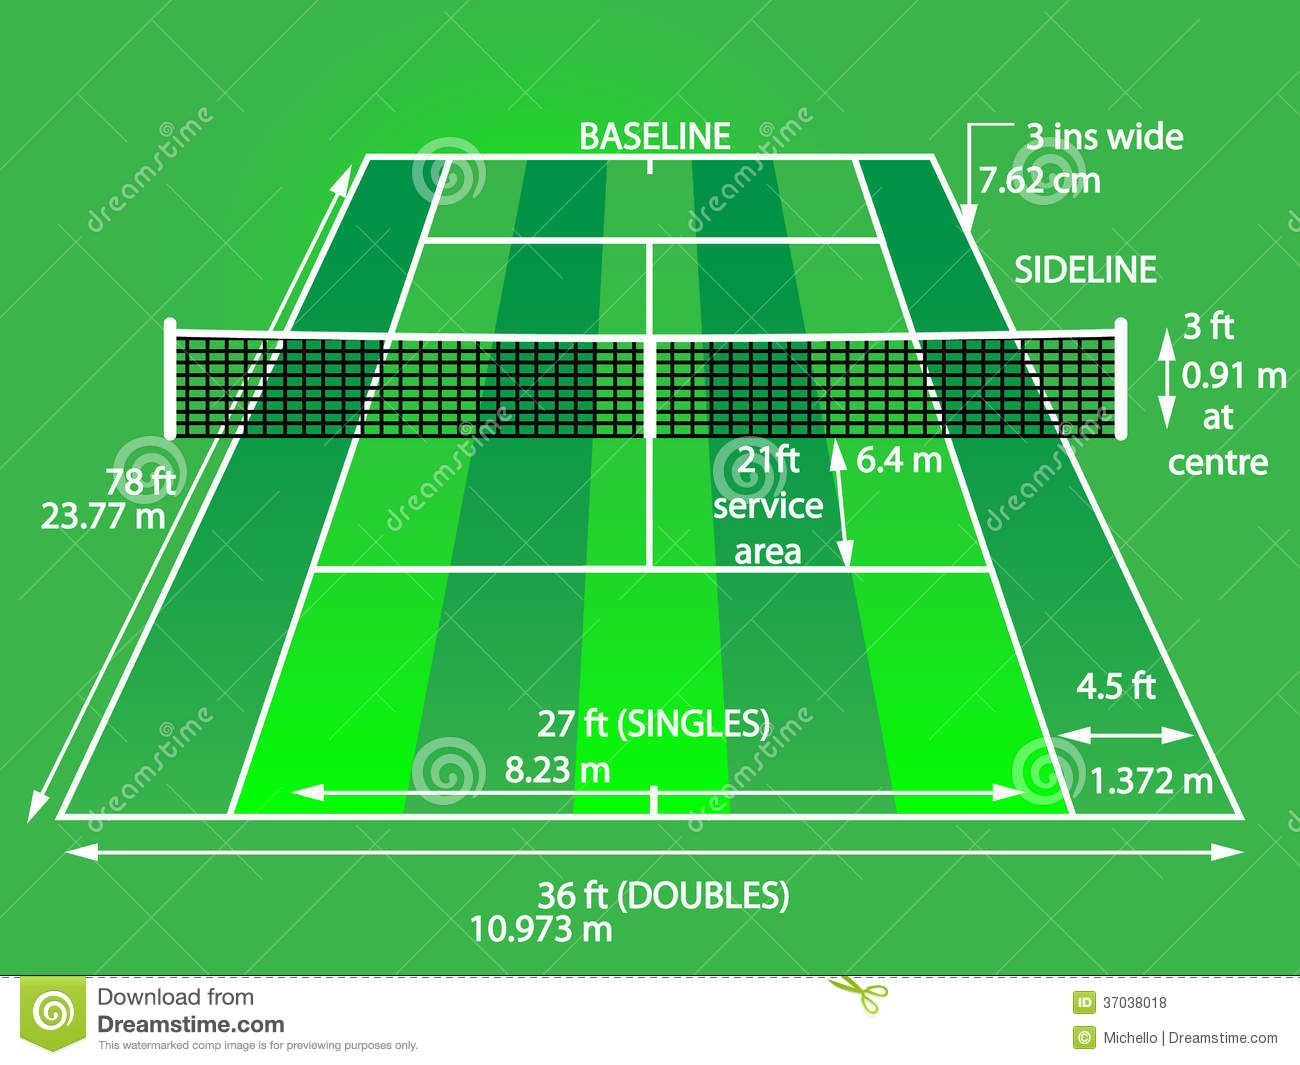 measurement of tennis court with diagram ulna blank green stock vector illustration baseline